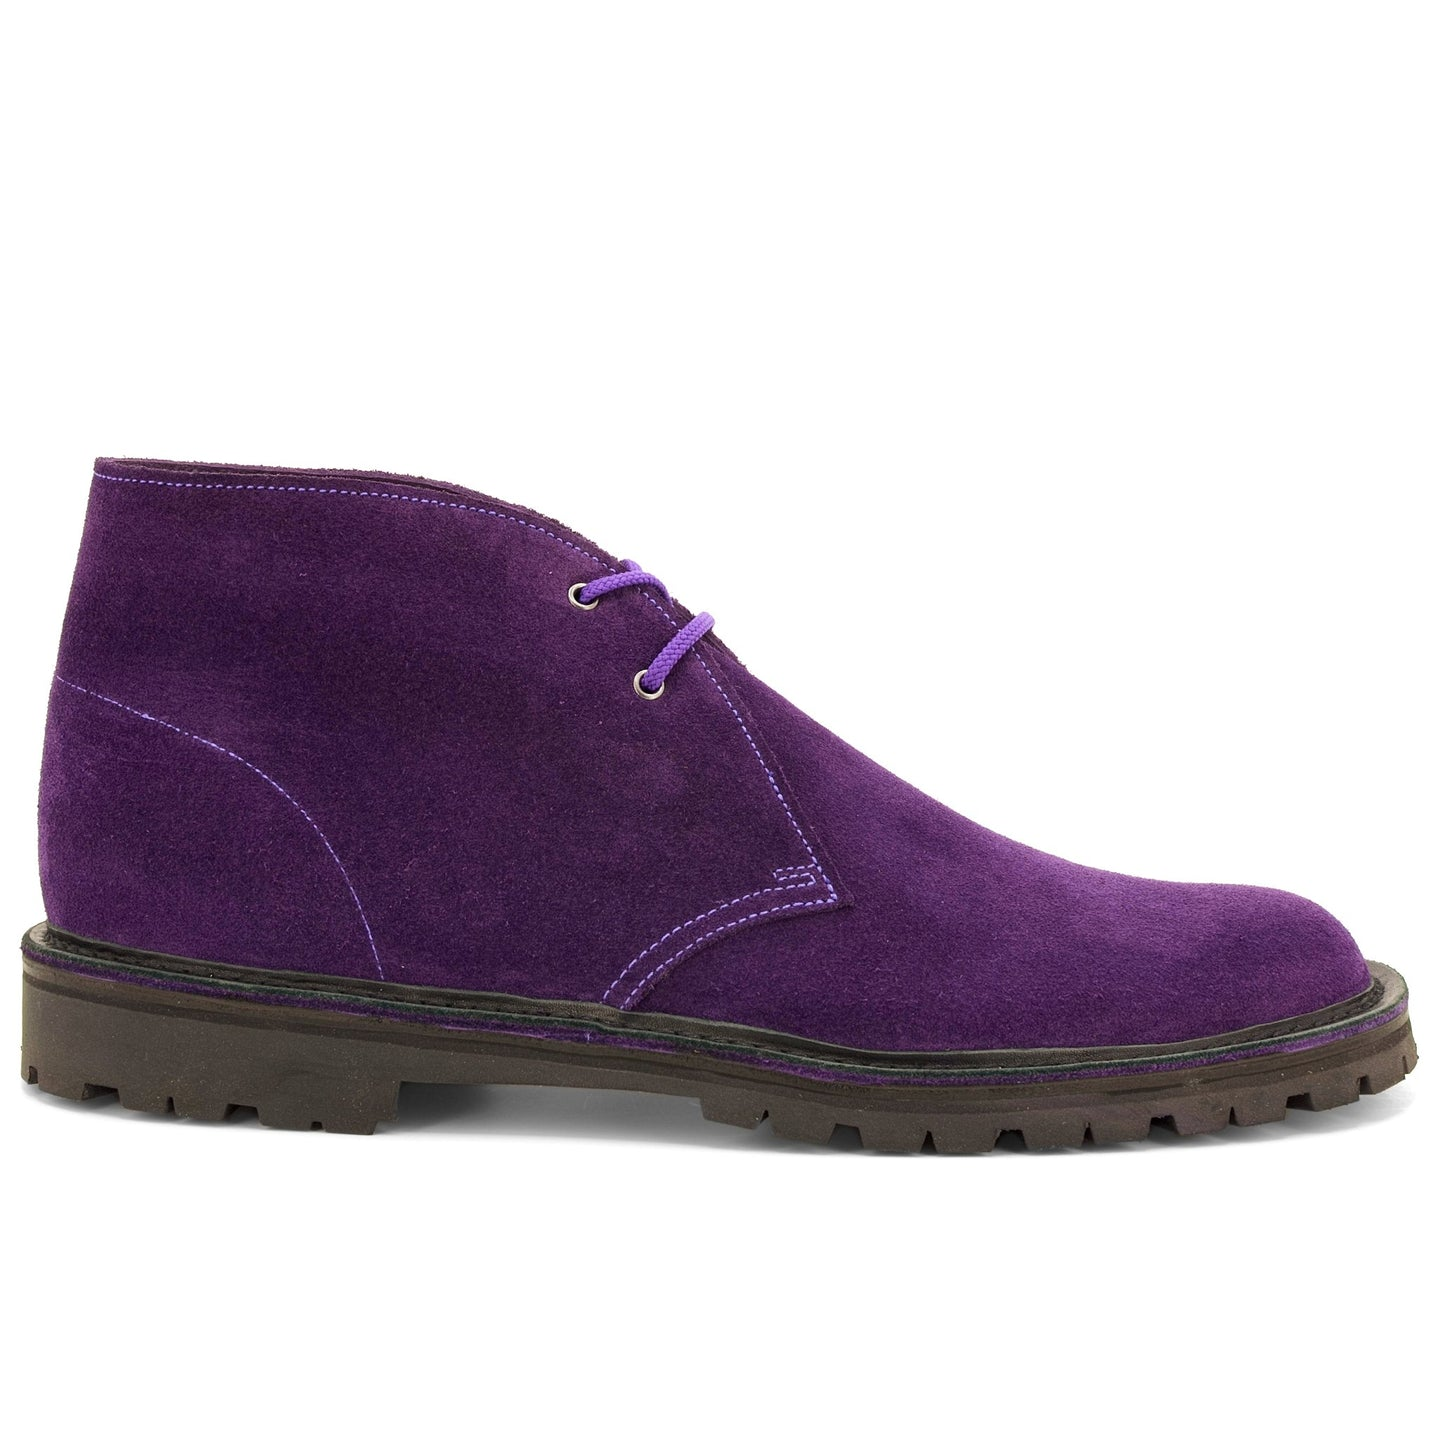 Purple Suede Desert Boots - Made in England - JADD Shoes